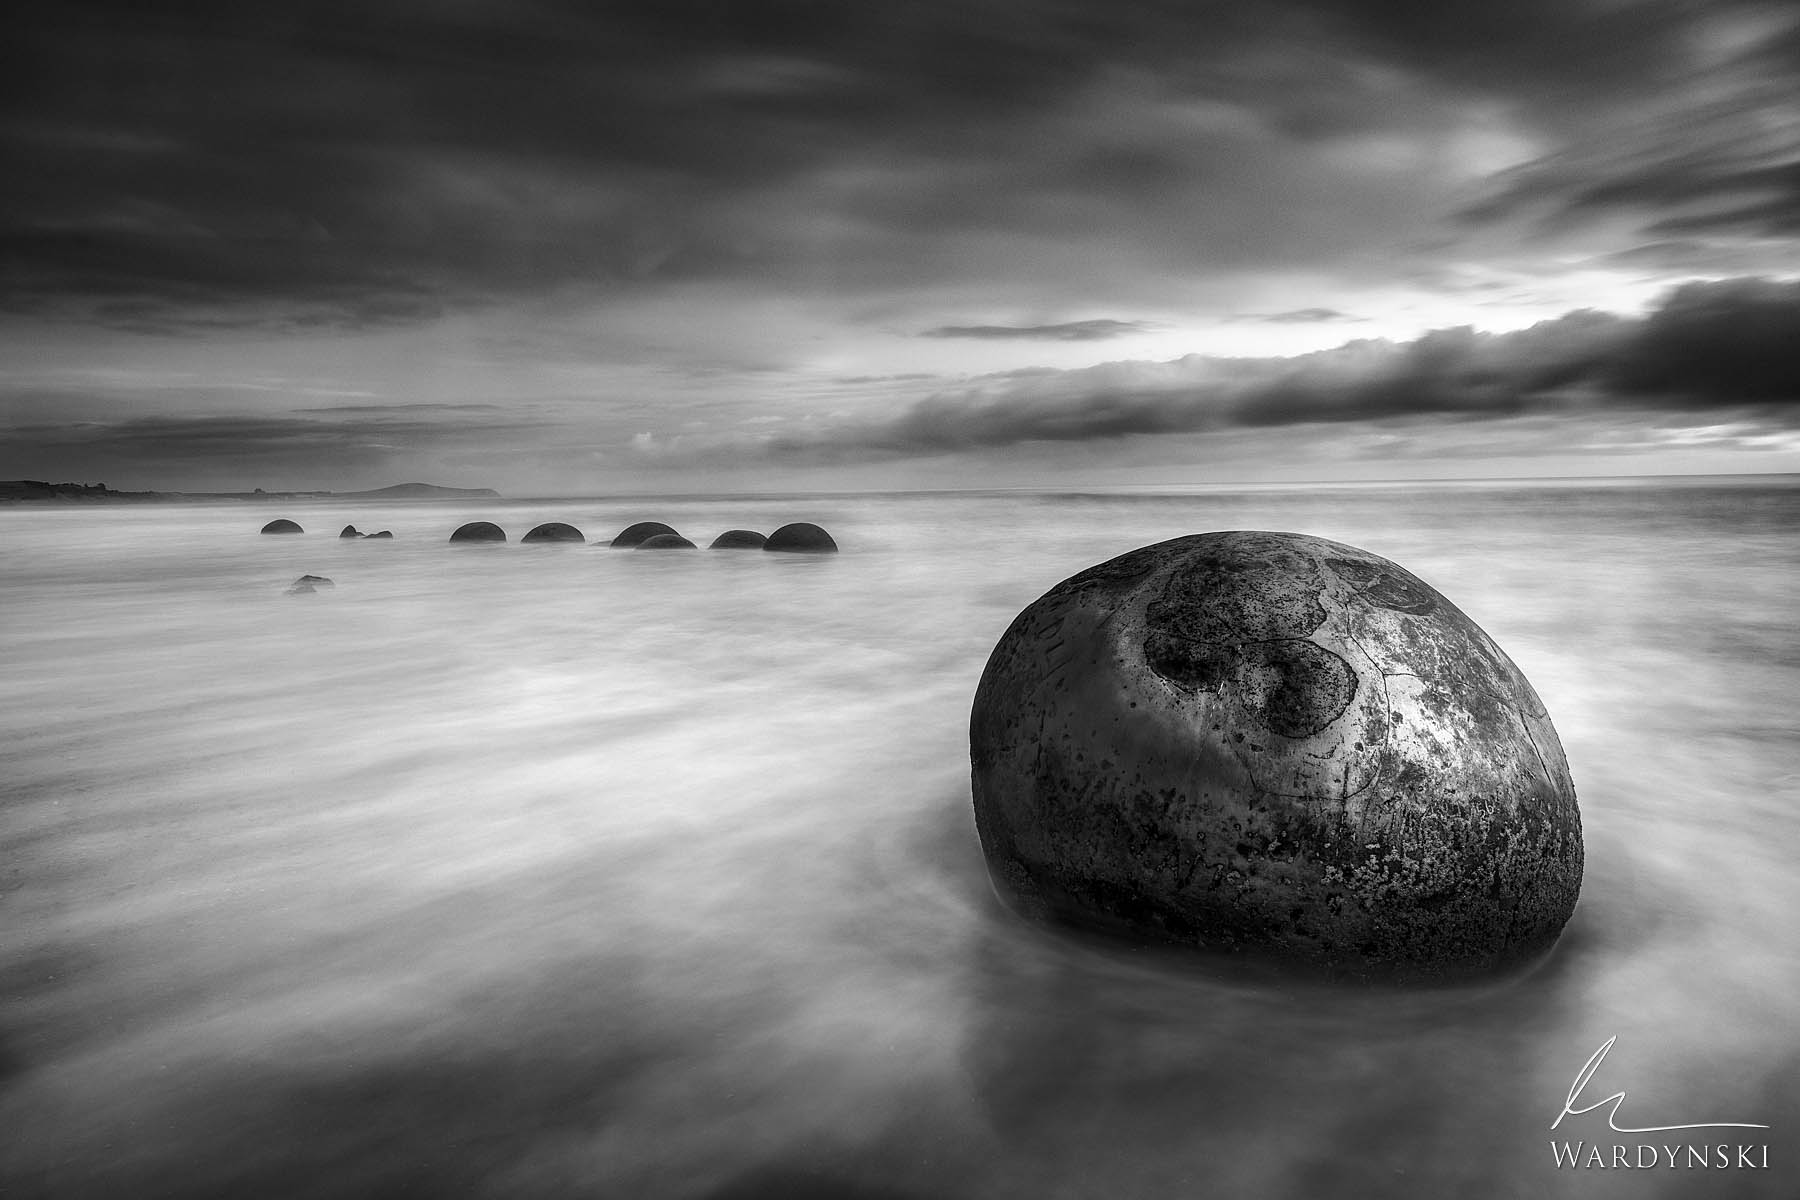 Black and White Fine Art Print | Limited Edition of 100  Time means everything. These are the Moeraki Boulders of New Zealand...